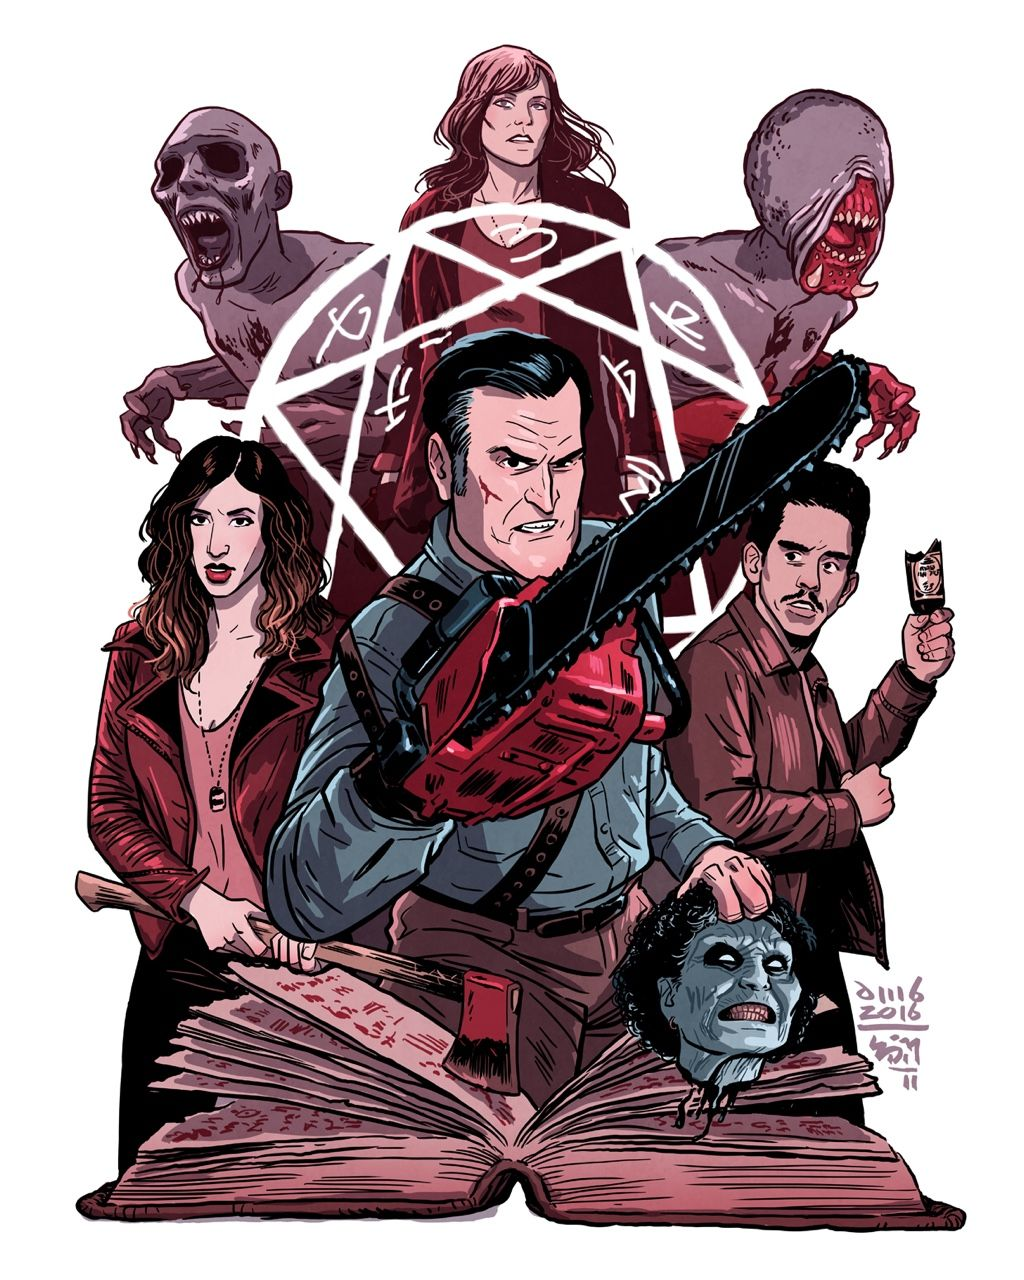 Ashy Slashy Art By David M Buisán Evil Dead Movies Ash Evil Dead Horror Movie Art